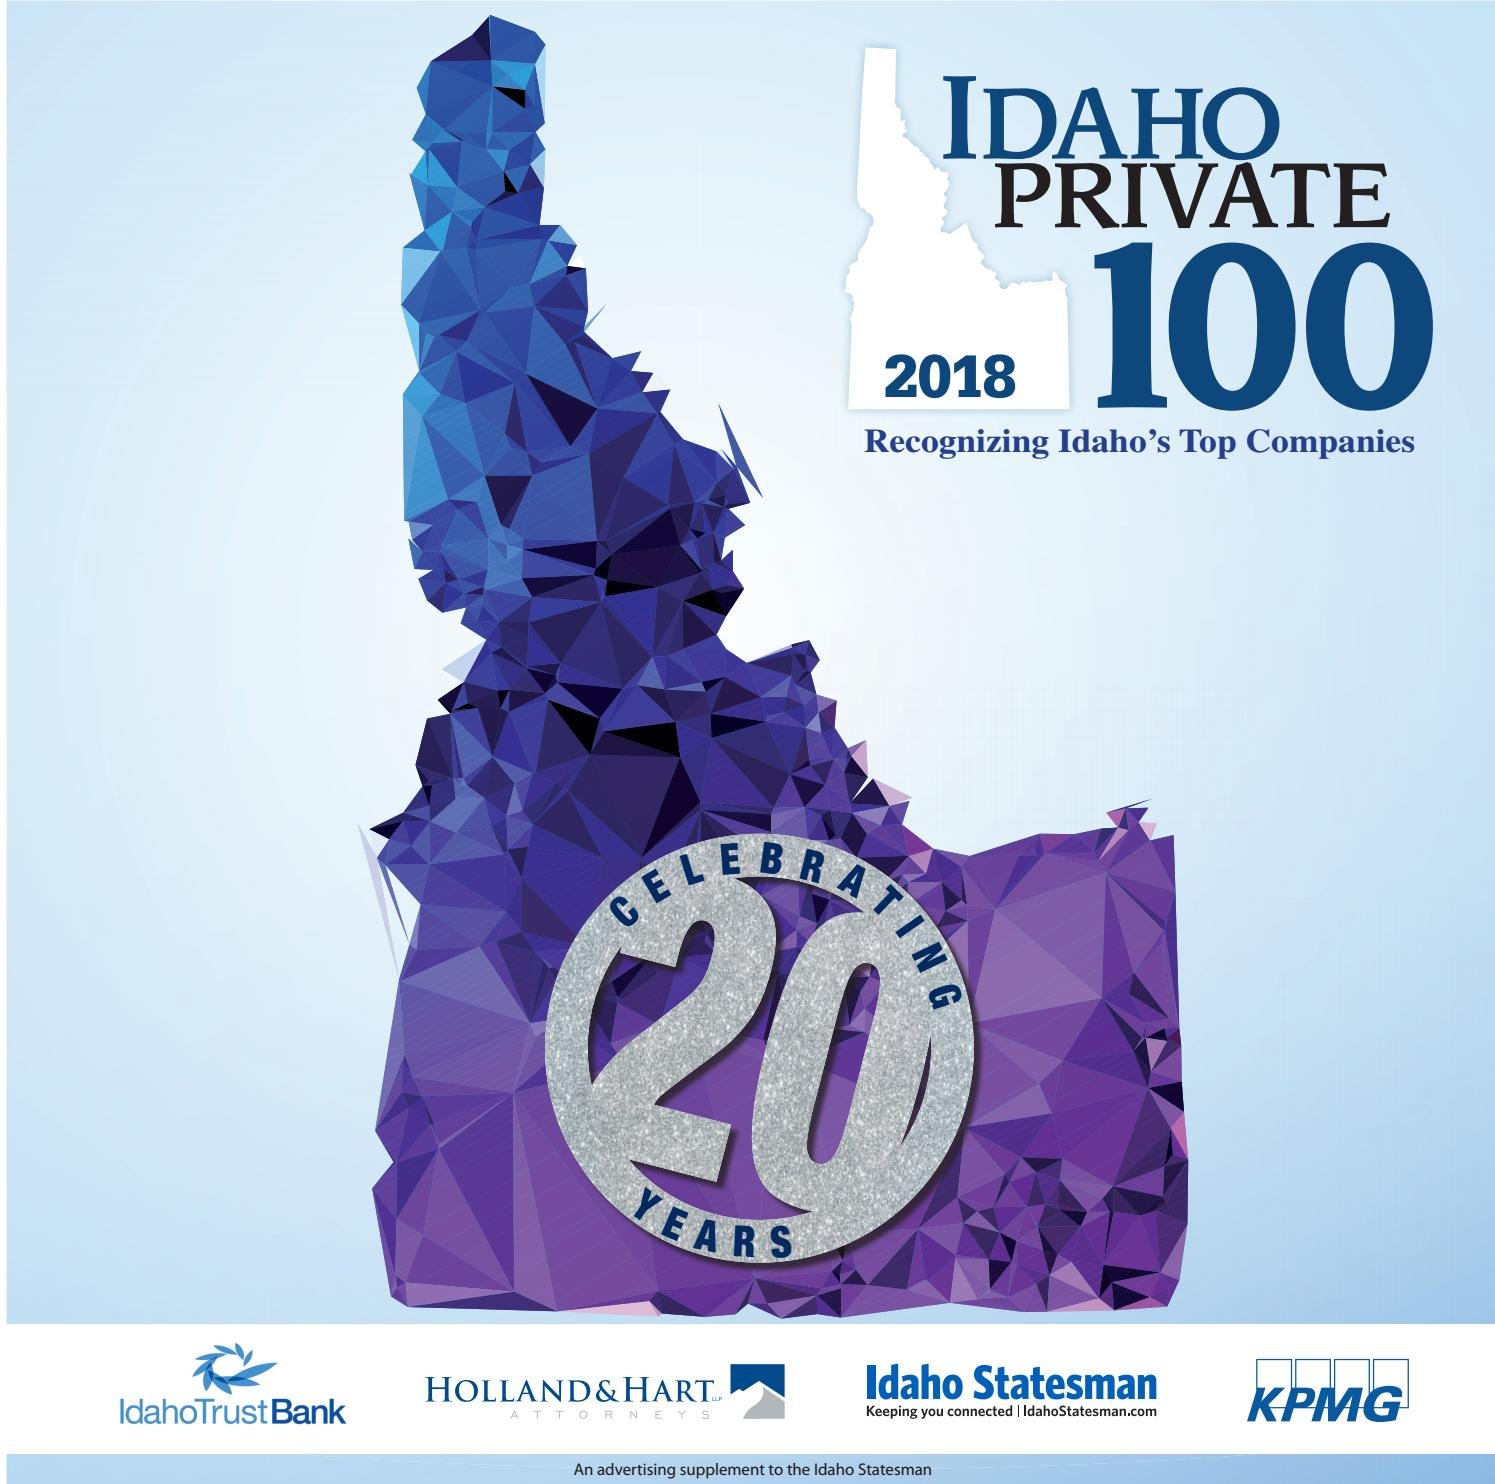 Idaho Private 100 2018 by Idaho Statesman - issuu